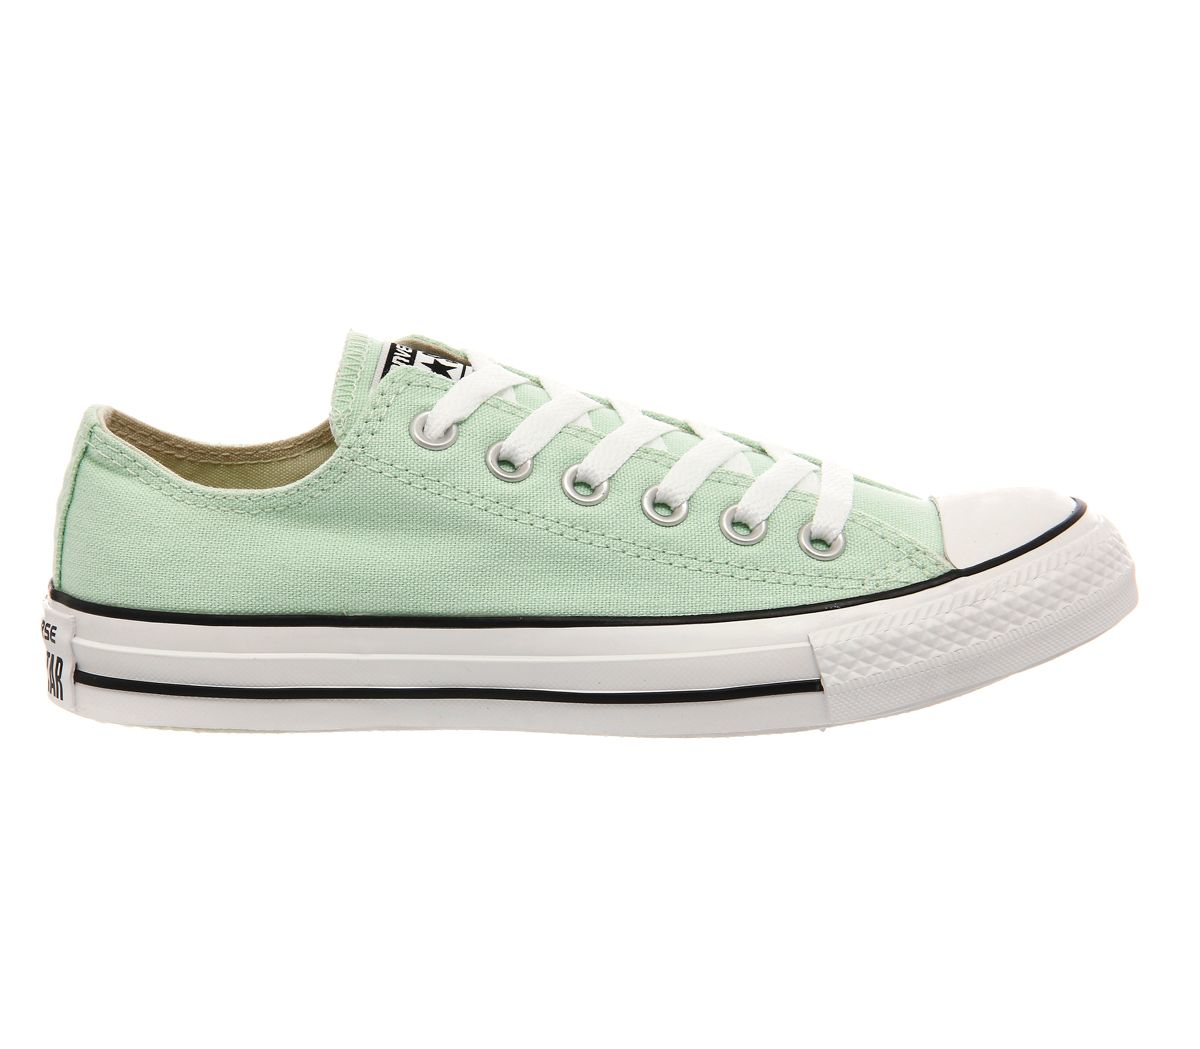 Converse Shoes House Of Fraser